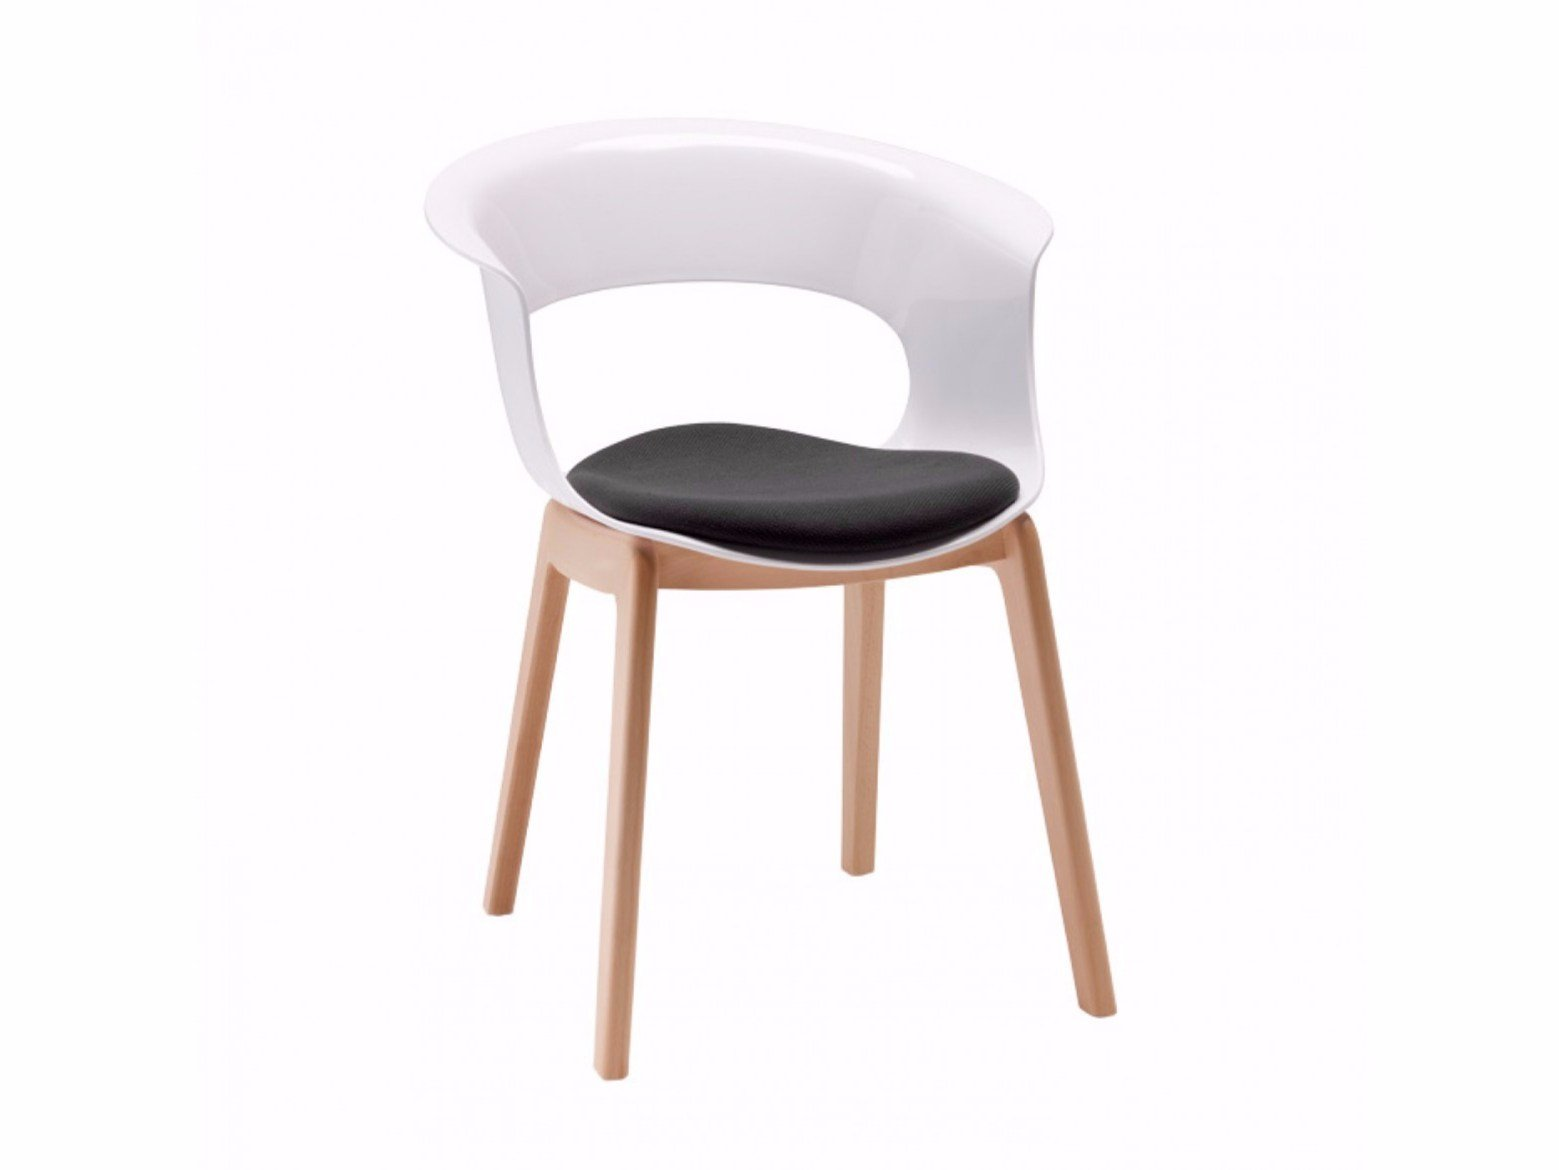 Polycarbonate chair NATURAL MISS B ANTISHOCK by SCAB